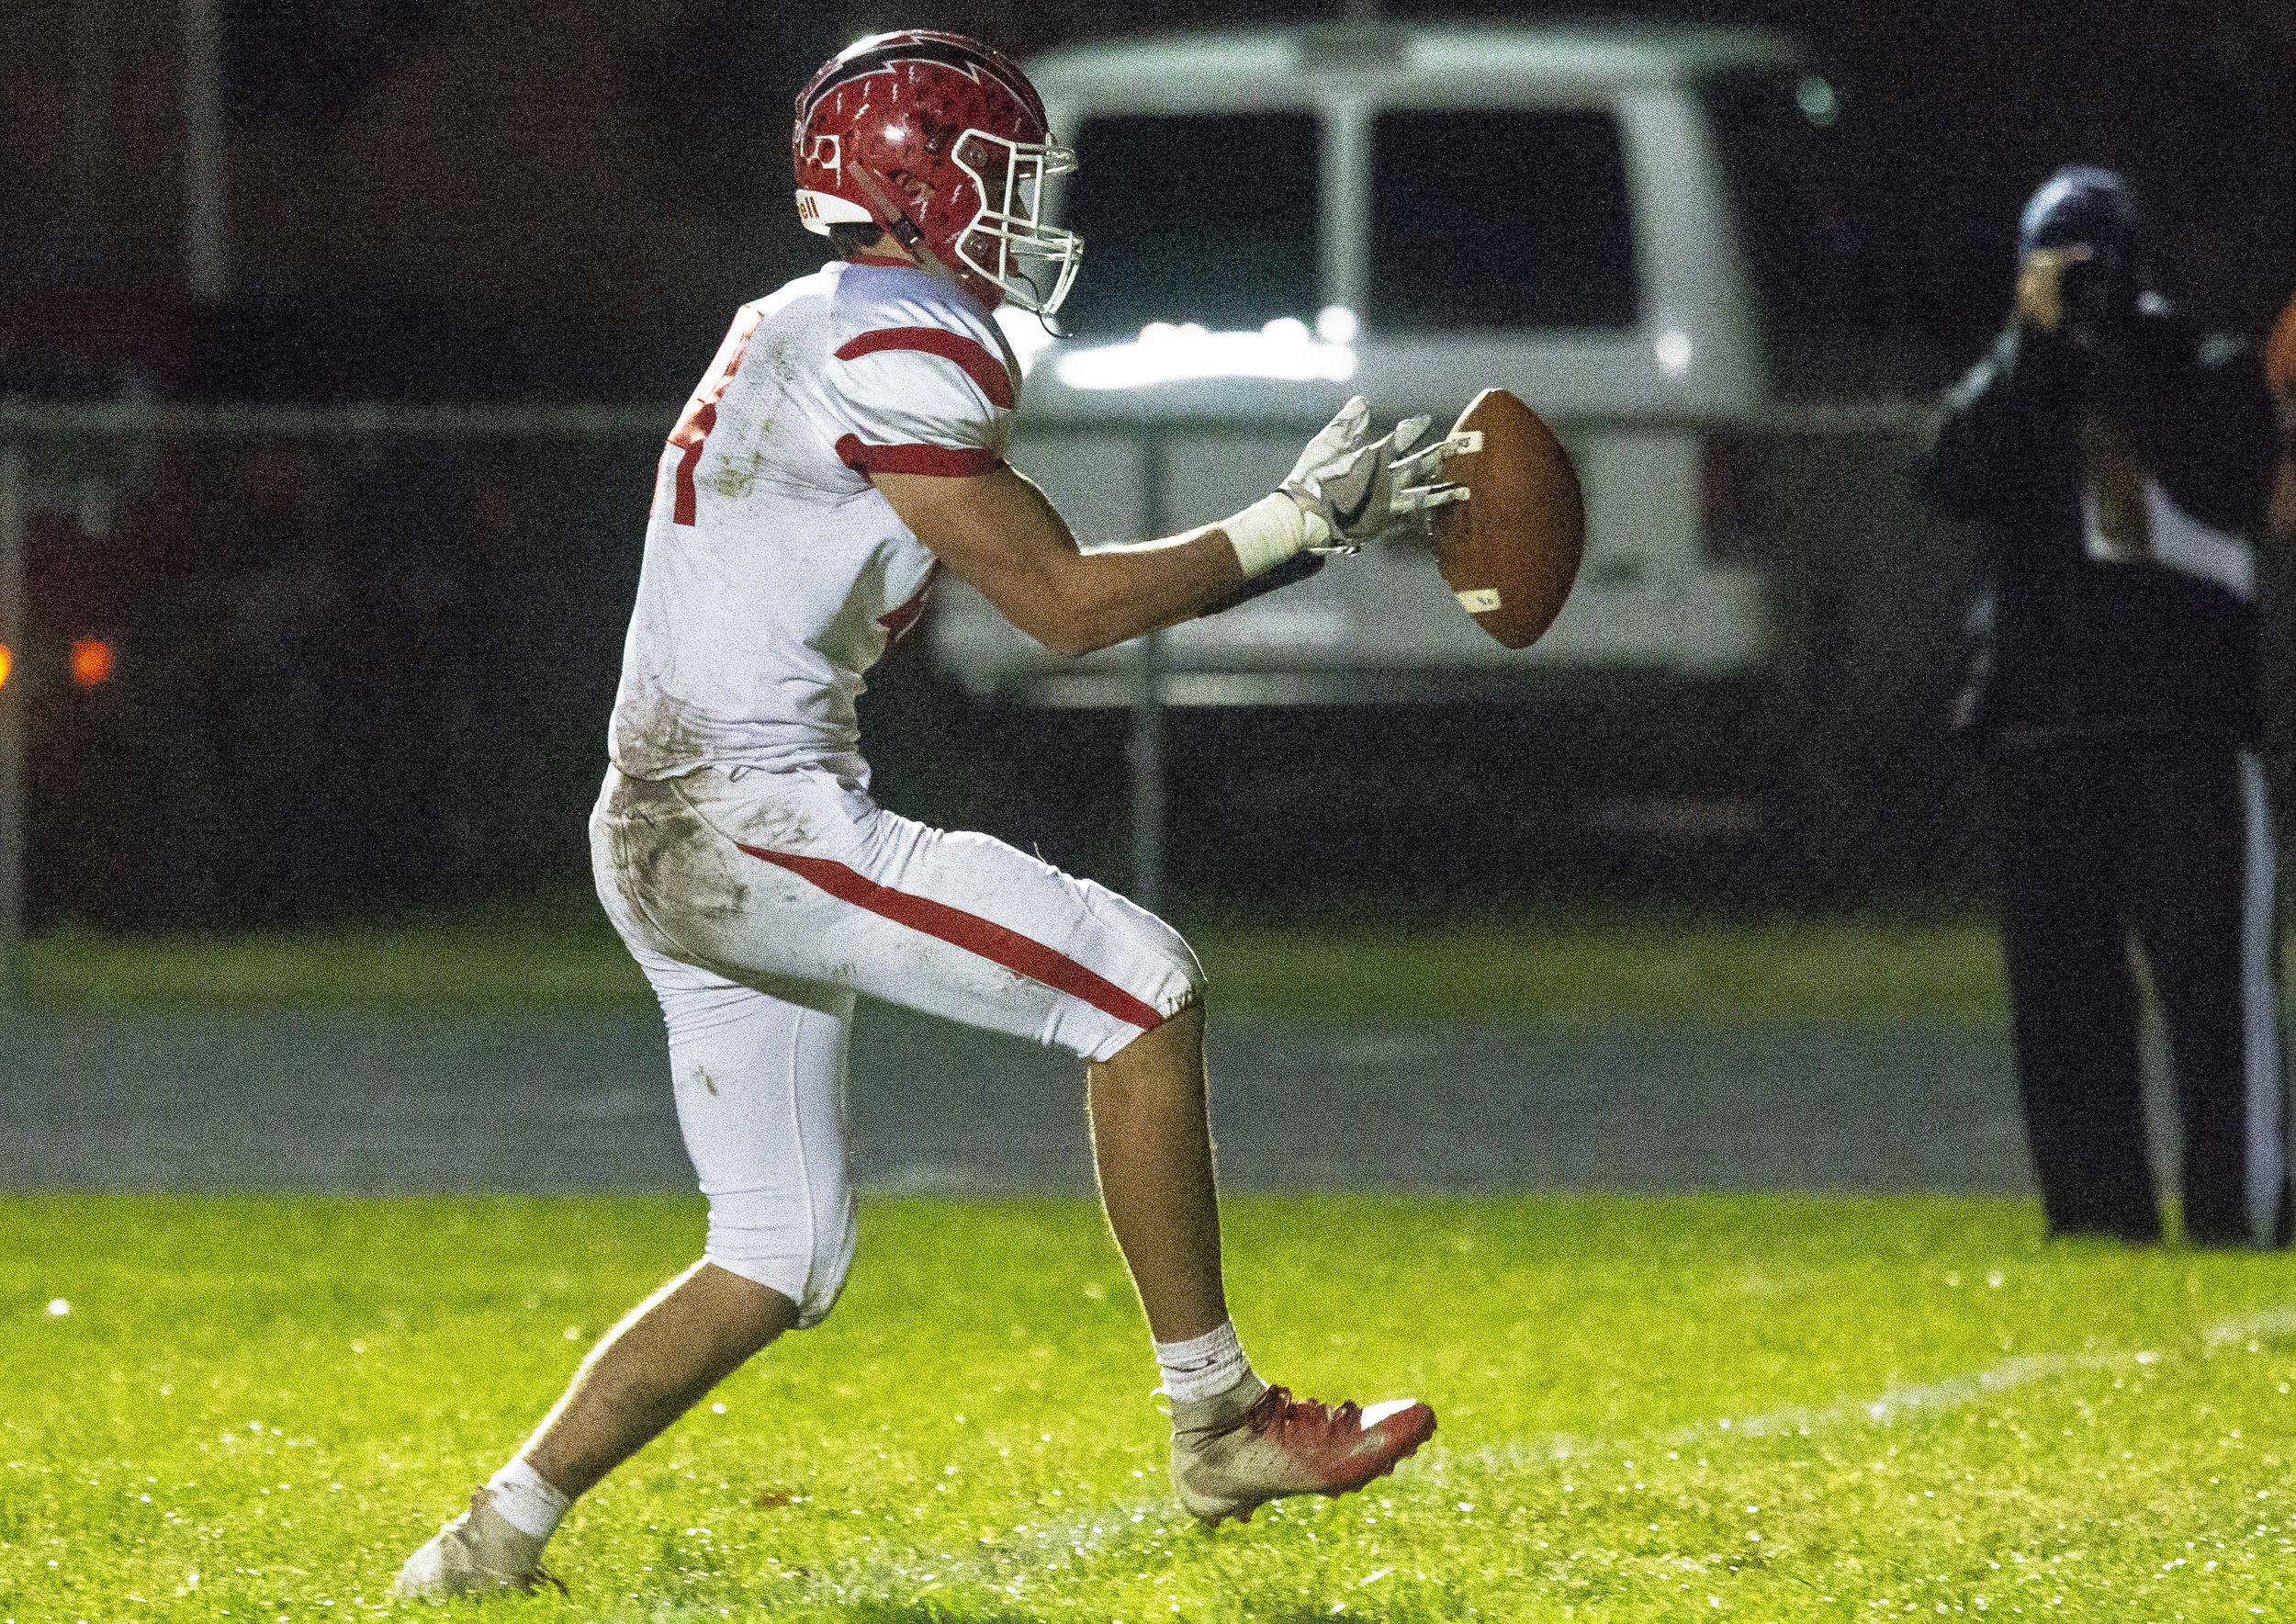 Glenwood's Tyler Burris almost lets a pass get away from him before pulling it in and scoring Friday, Oct. 12, 2018 at Southeast High School's Spartan Field in Springfield, Ill. [Rich Saal/The State Journal-Register]